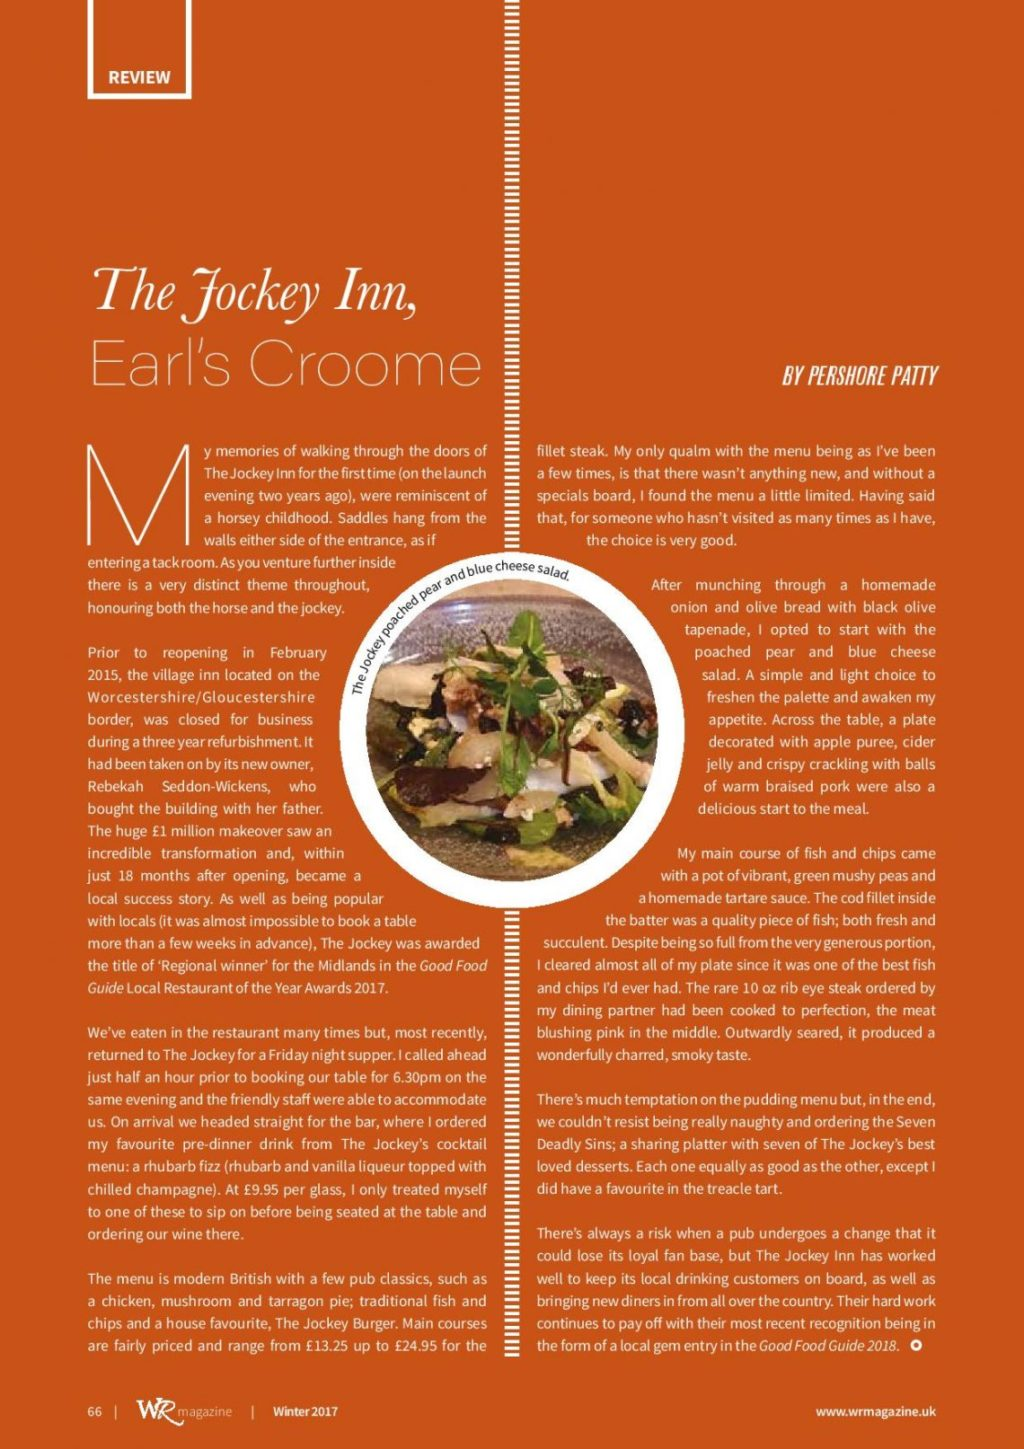 Pershore Patty: The Jockey Inn, Earl's Croome Review Features in Worcestershire's WR Magazine